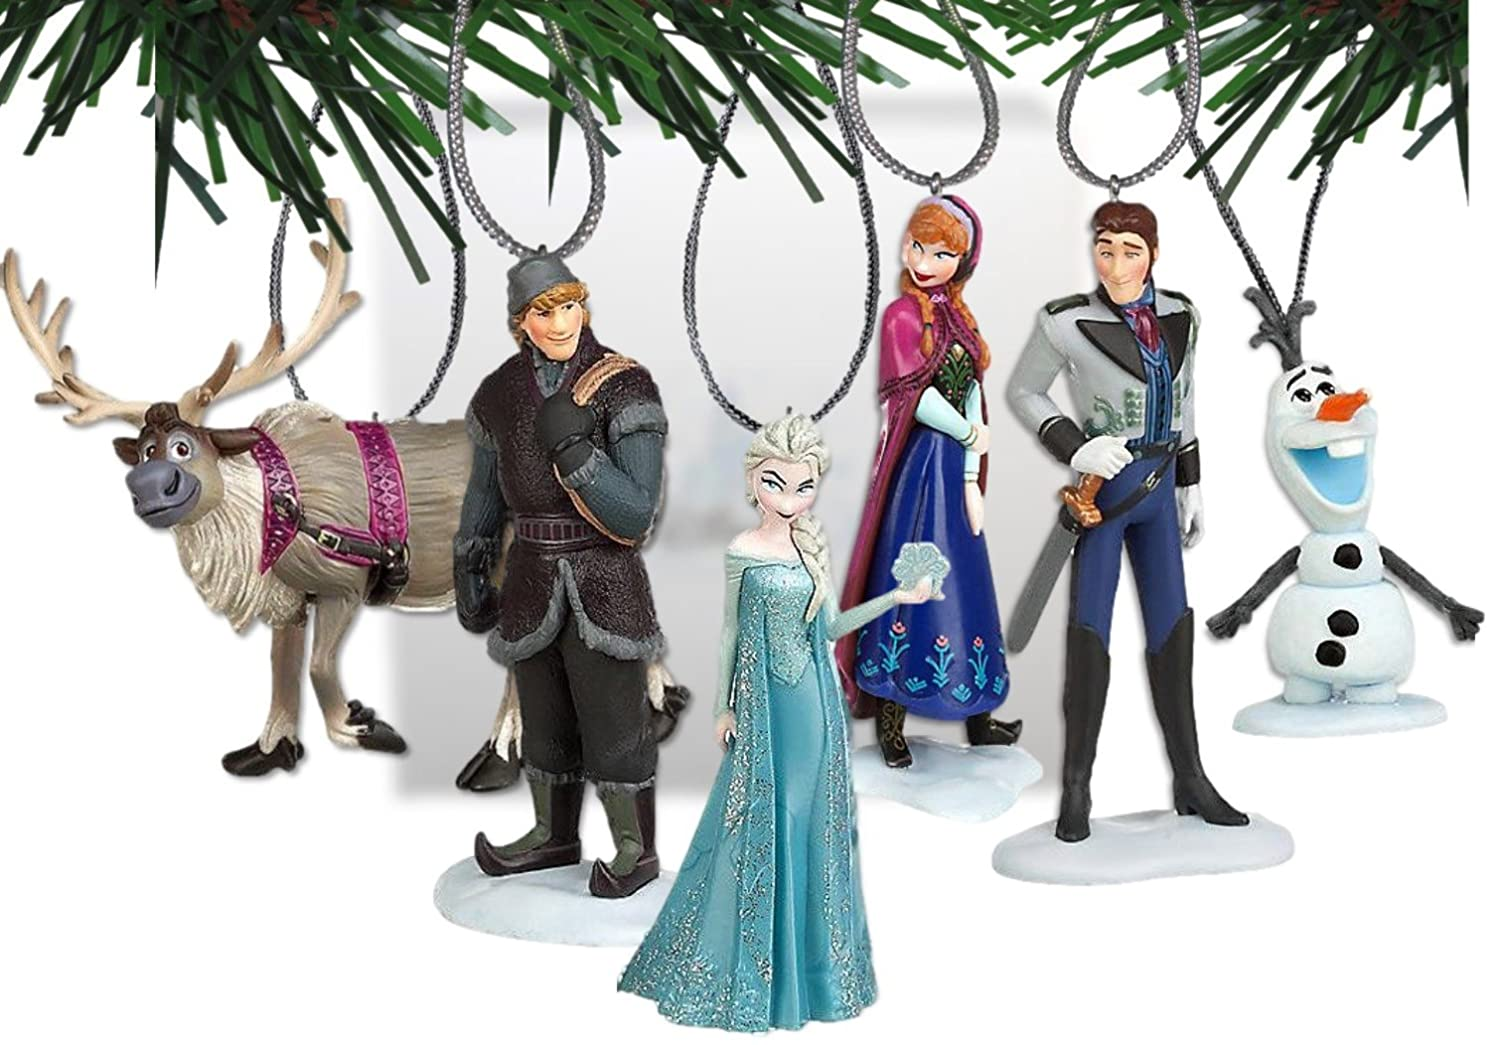 Amazon.com: Disney\'s Frozen Holiday Ornament Set- (6) PVC Figure ...